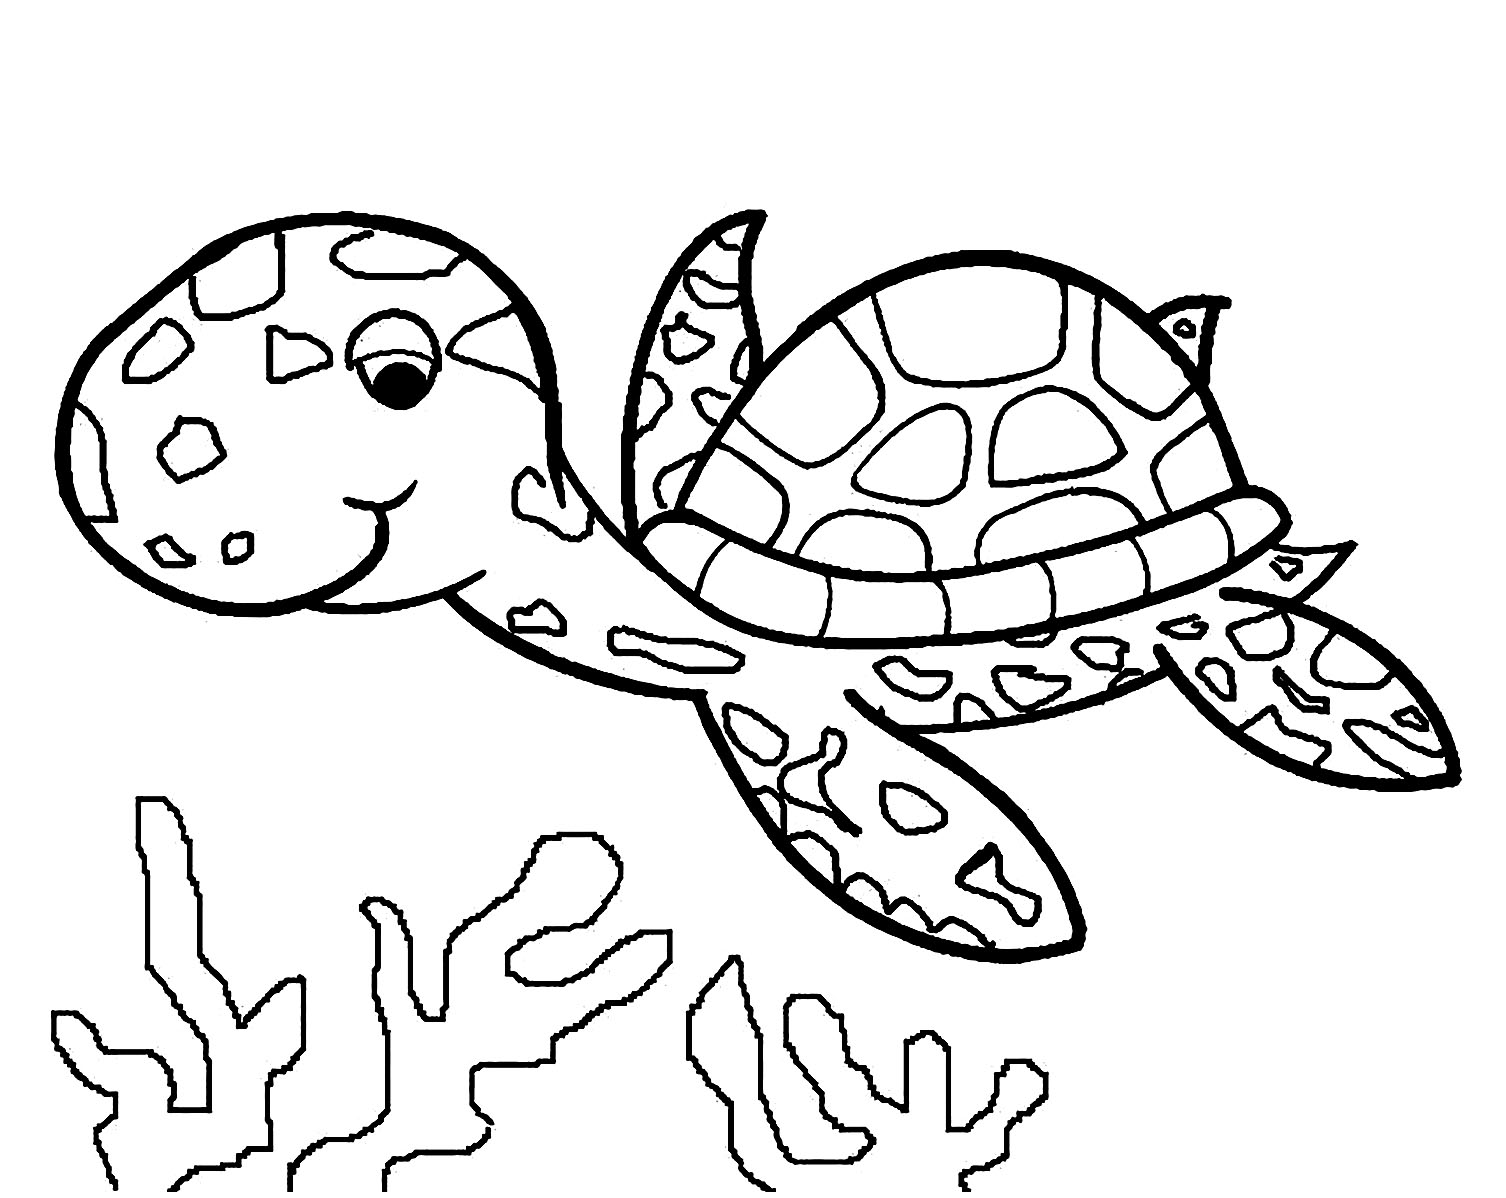 turtles colouring detailed turtle coloring pages at getcoloringscom free turtles colouring